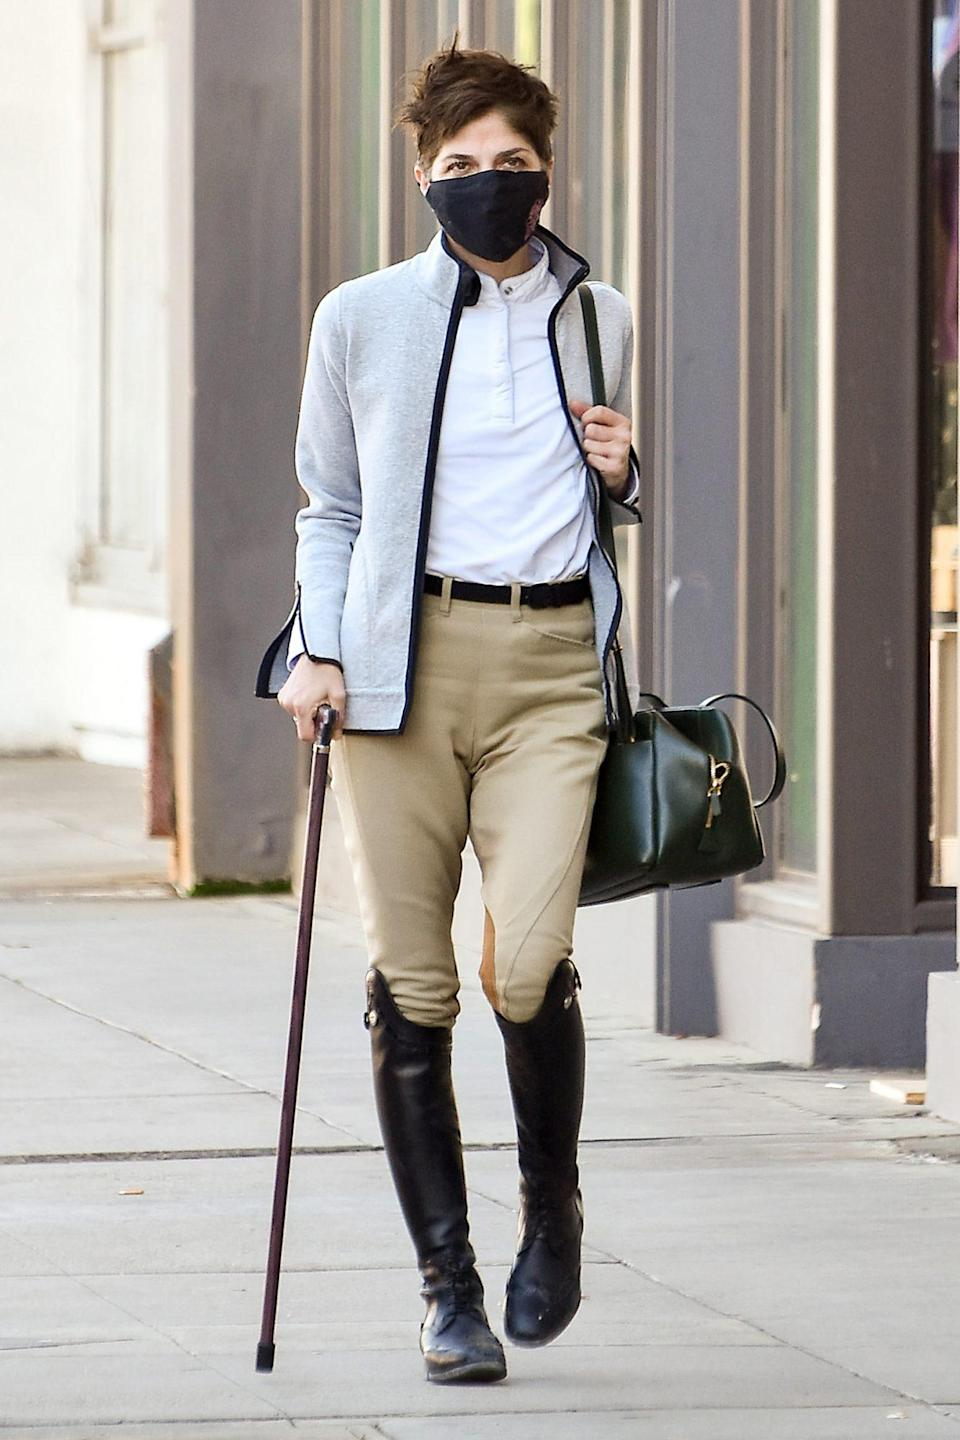 <p>Selma Blair steps out in a stylish white top and tan trousers with black knee high boots on Thursday in L.A.</p>